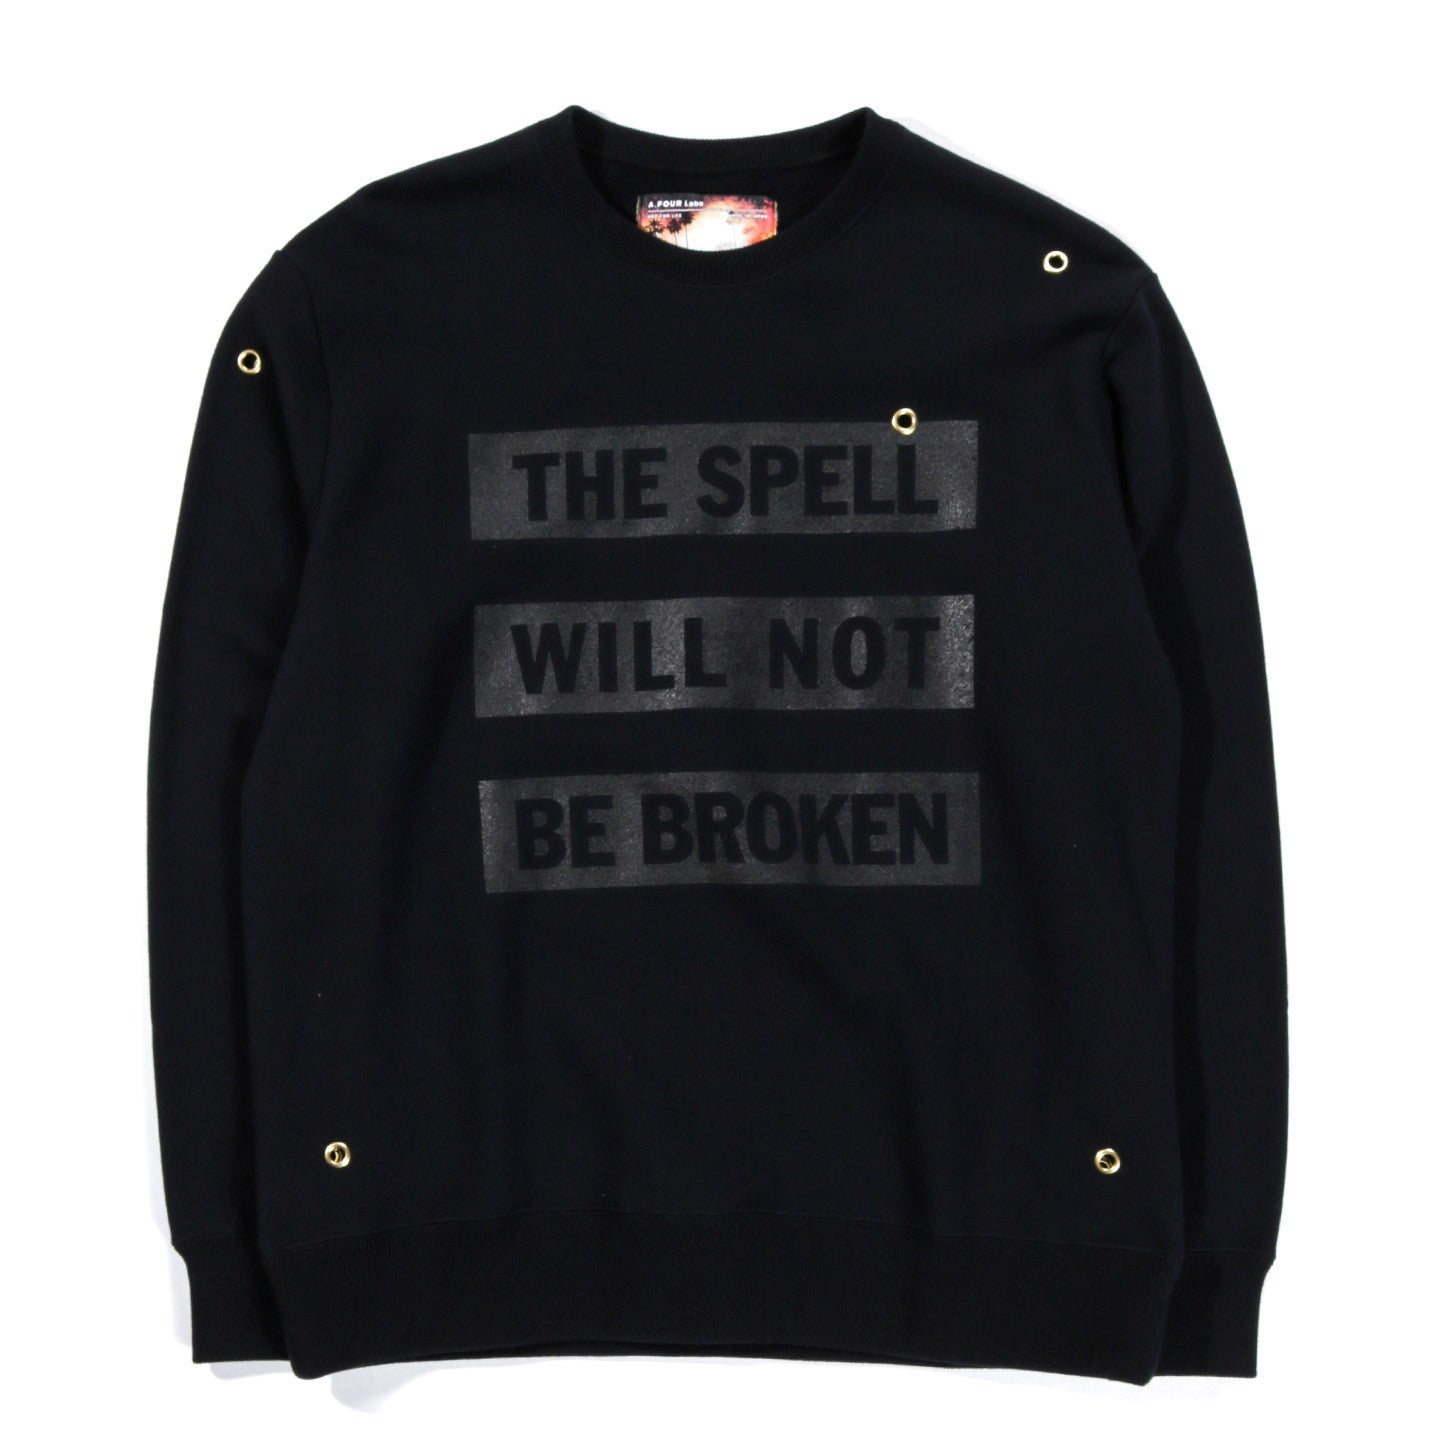 A.FOUR X CALI THORNHILL DEWITT EYELET SWEAT BLACK